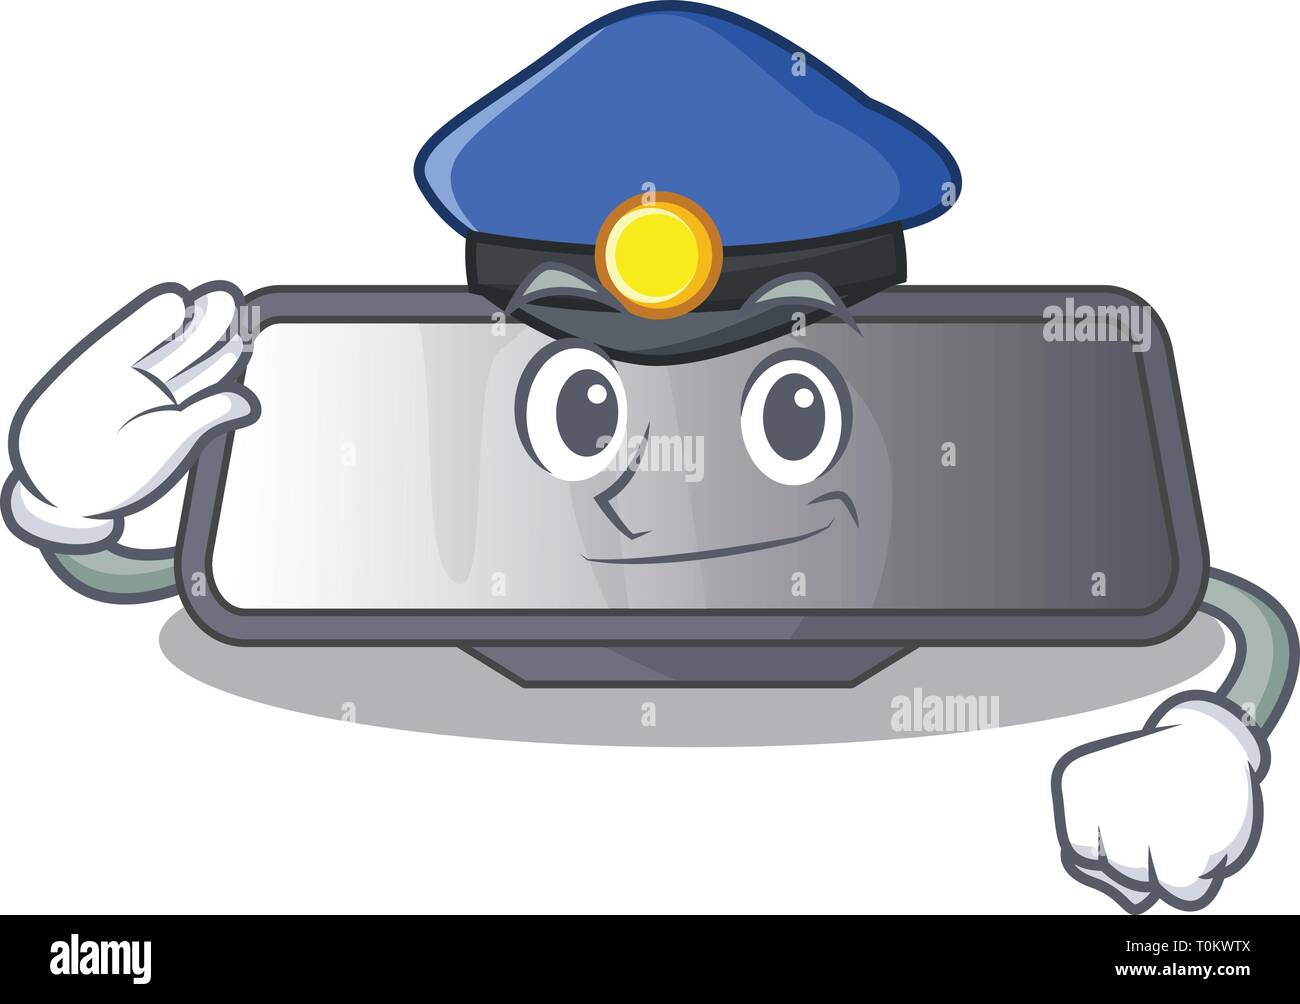 Police rear view mirror isolated with mascot - Stock Vector